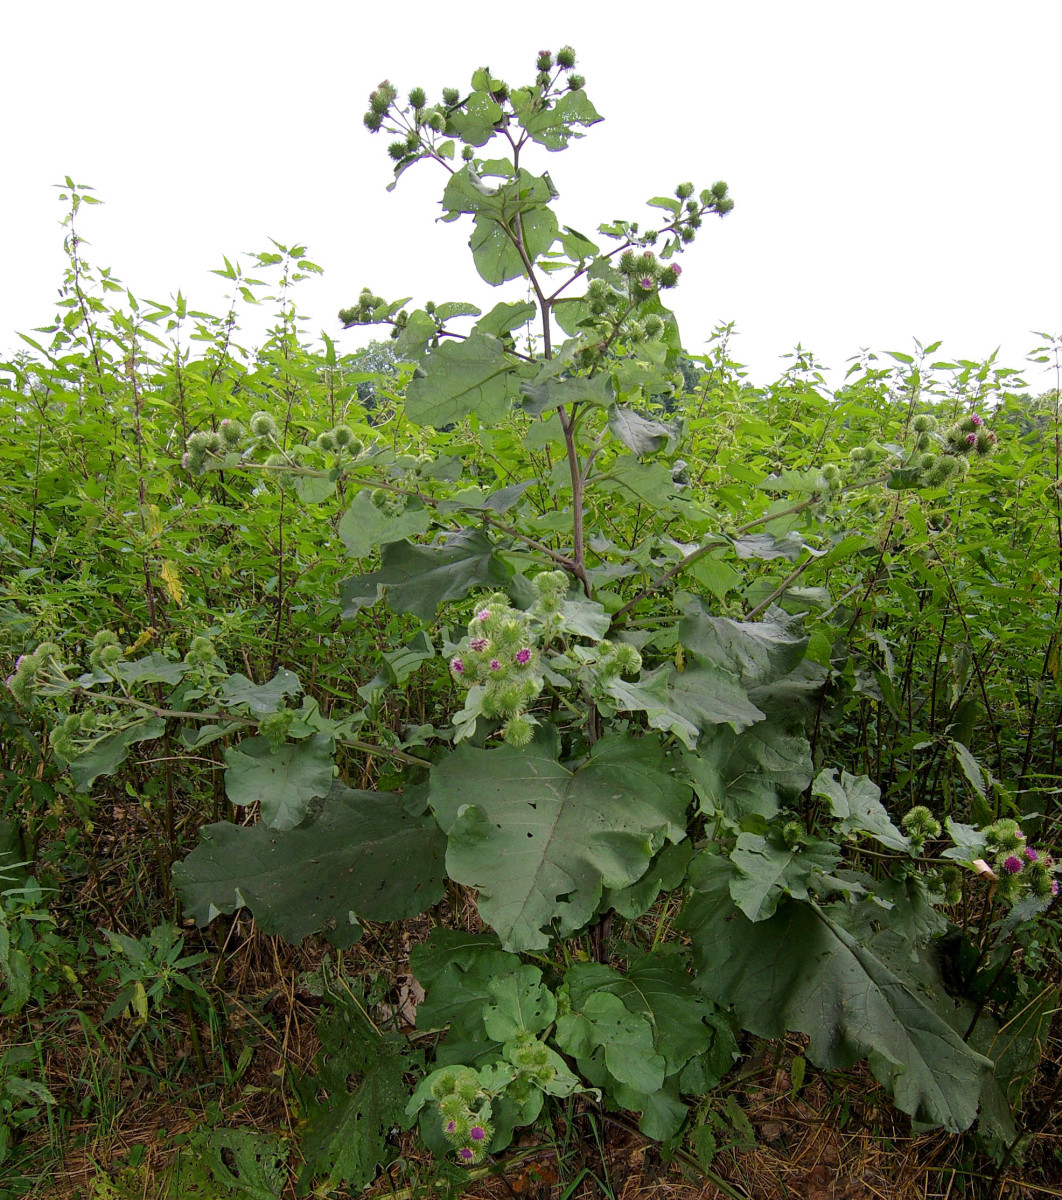 The burdock plant grows to a height of about three to four feet. It has purple flowers that bloom between the months of June and October and wavy, heart-shaped leaves that are green on top and lighter (whitish) on the bottom.